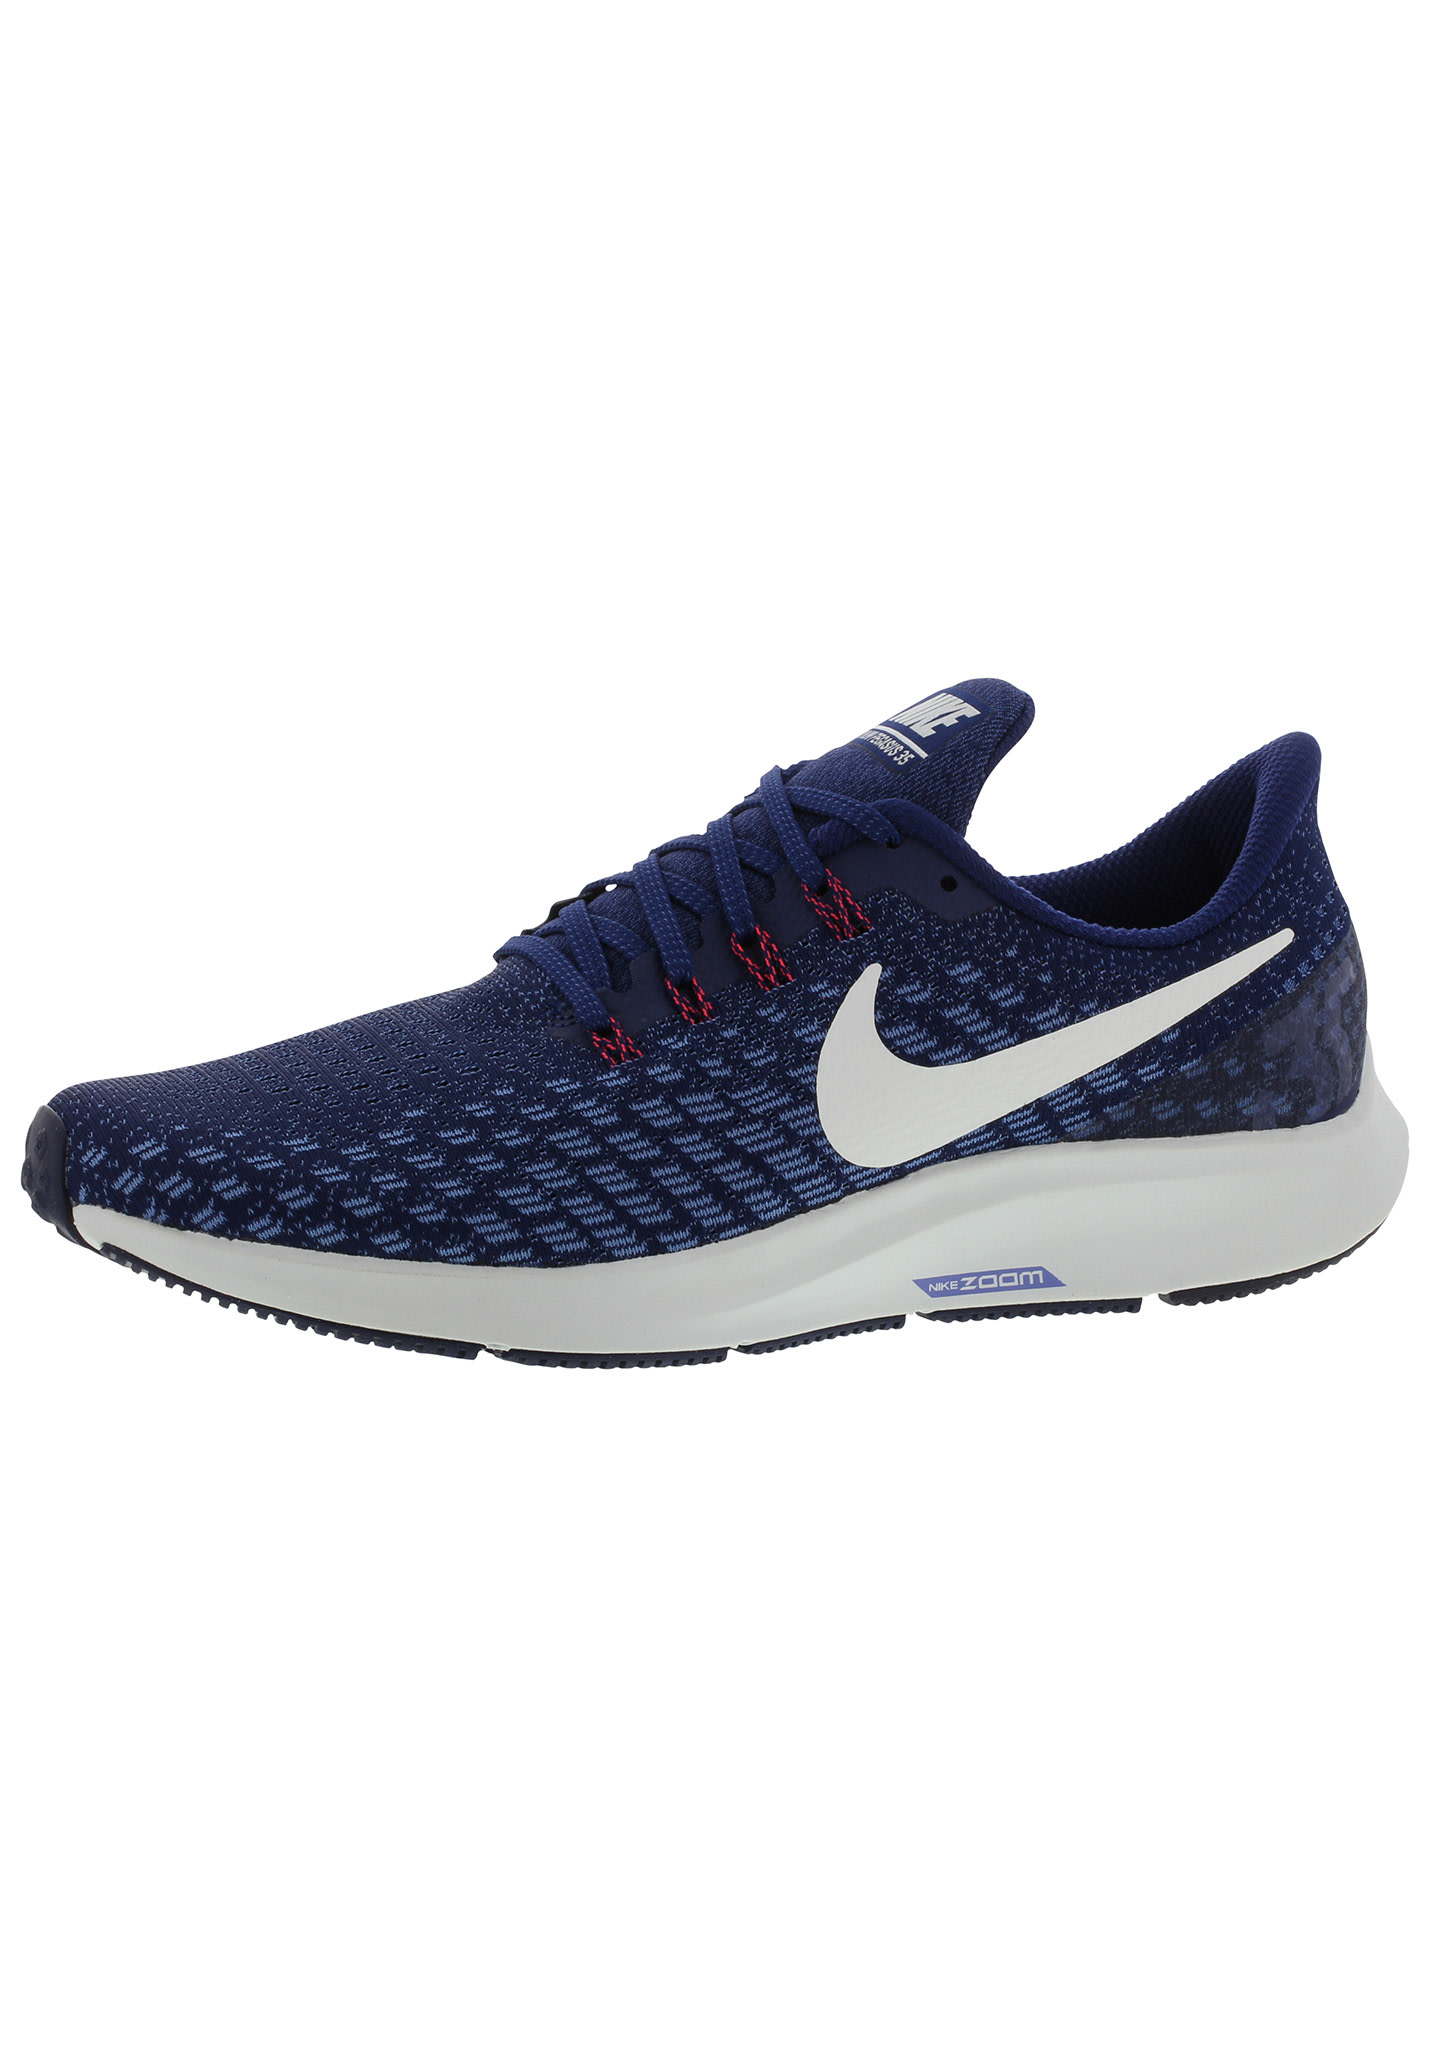 best service 5bc93 1723c Nike Air Zoom Pegasus 35 - Running shoes for Women - Blue